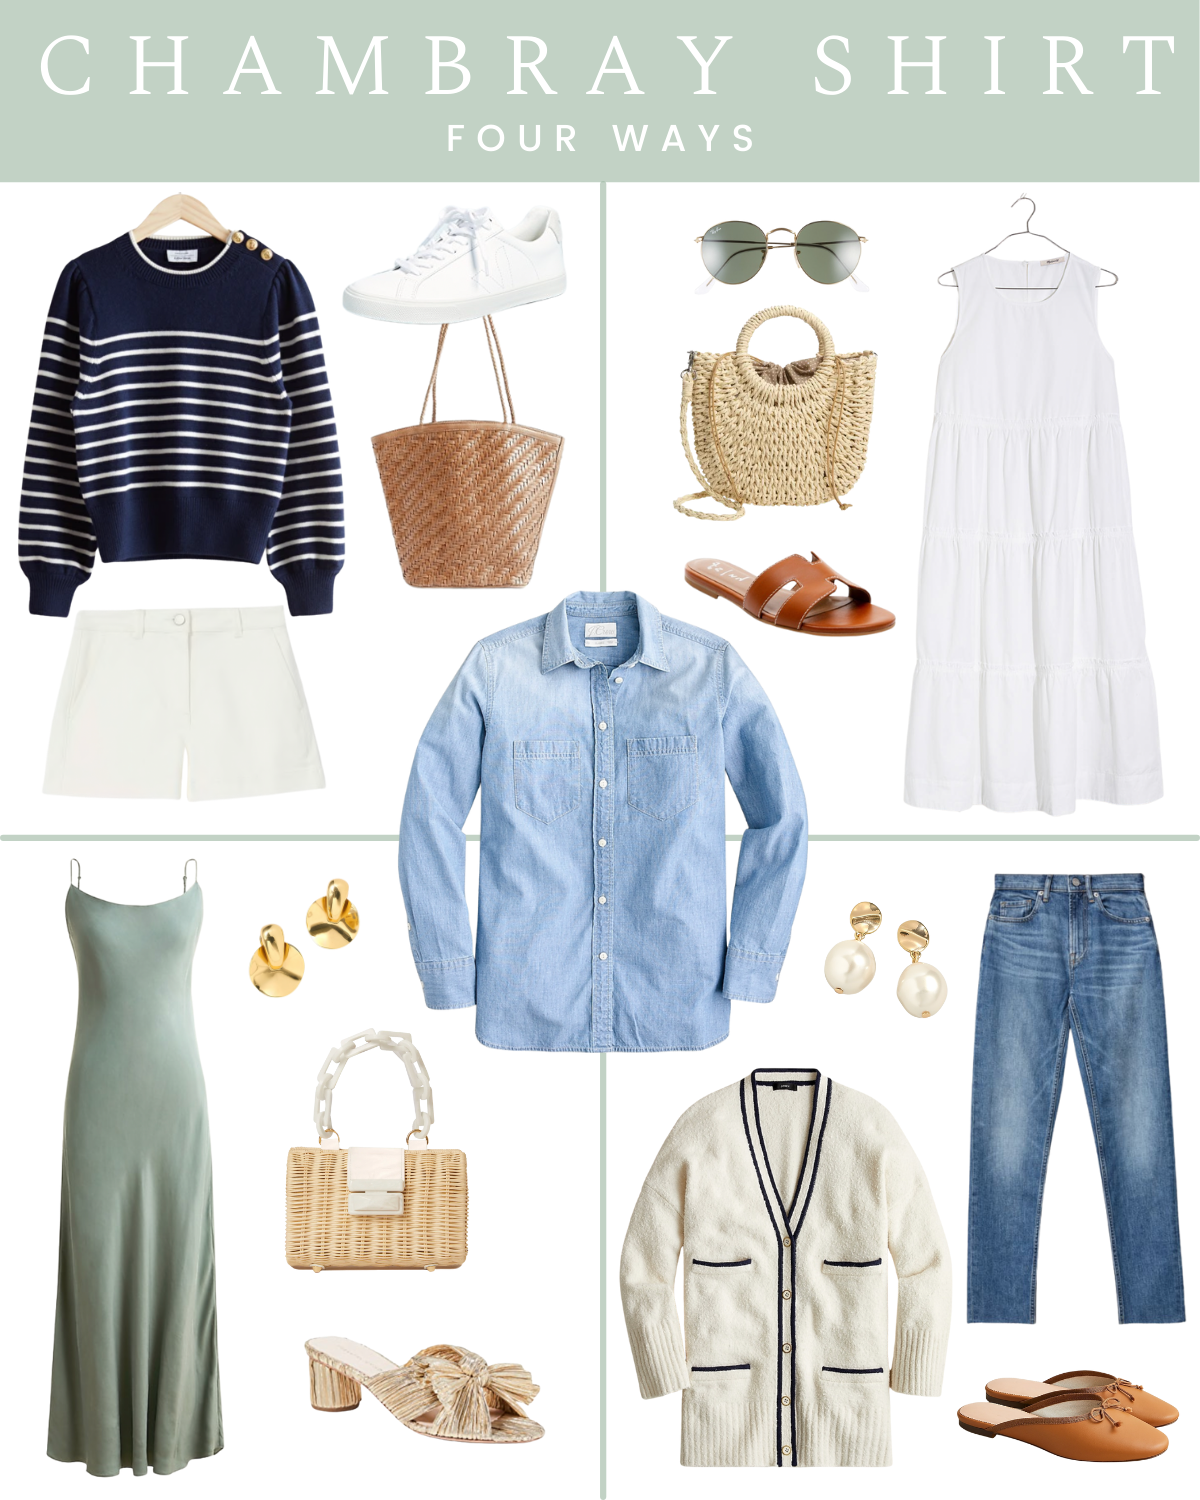 How to style a Chambray Shirt 4 Ways